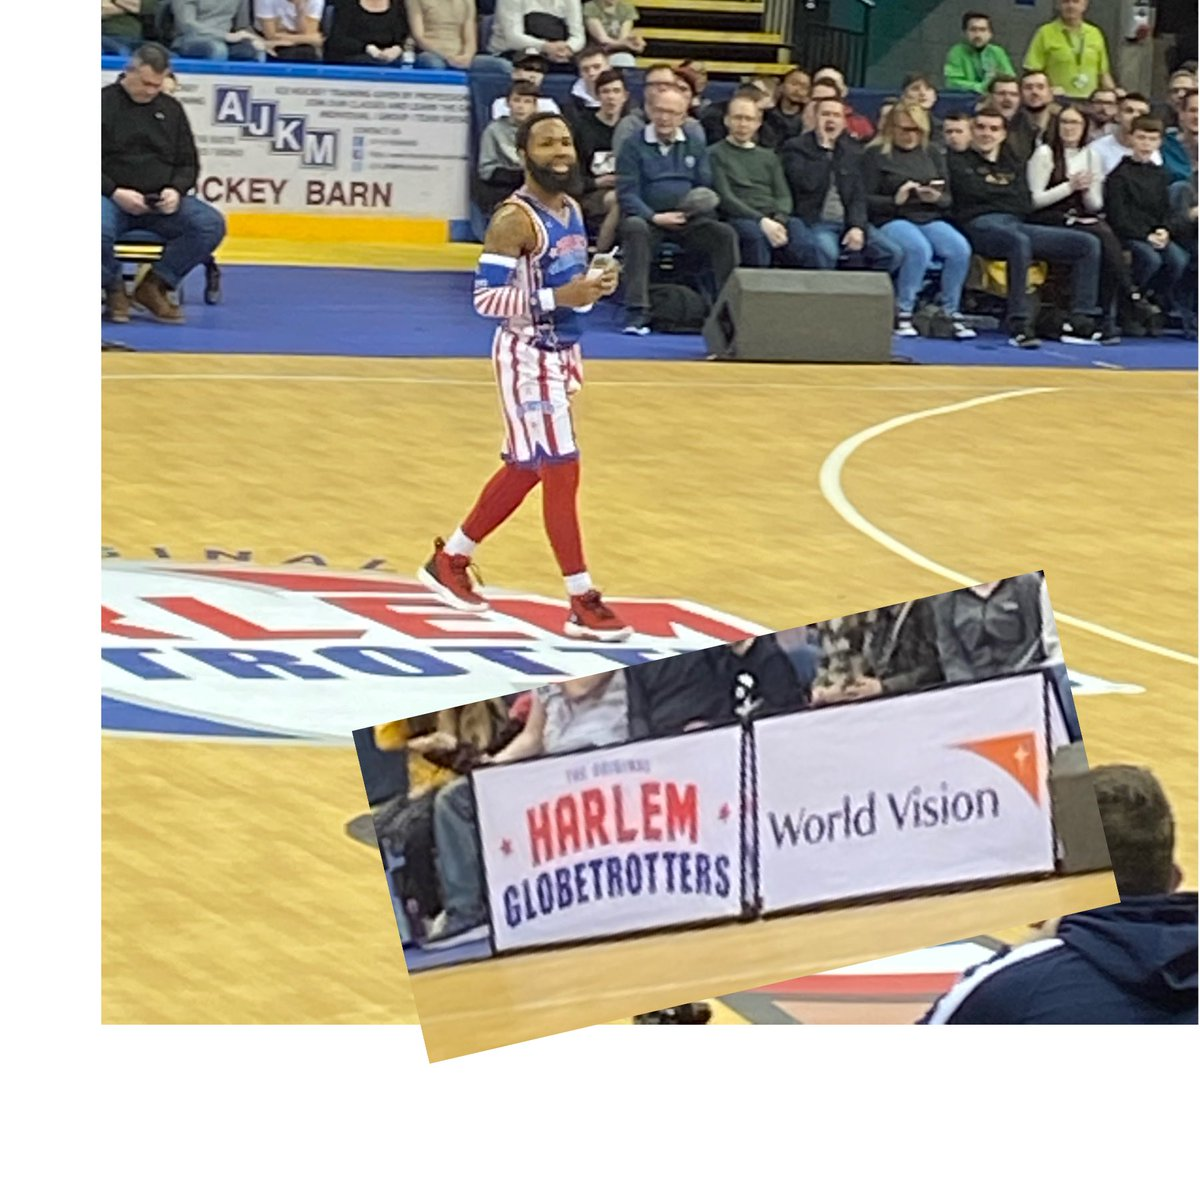 Here @Globies hearing about the great effort the guys @WorldVision make for children across the world 👍🏀